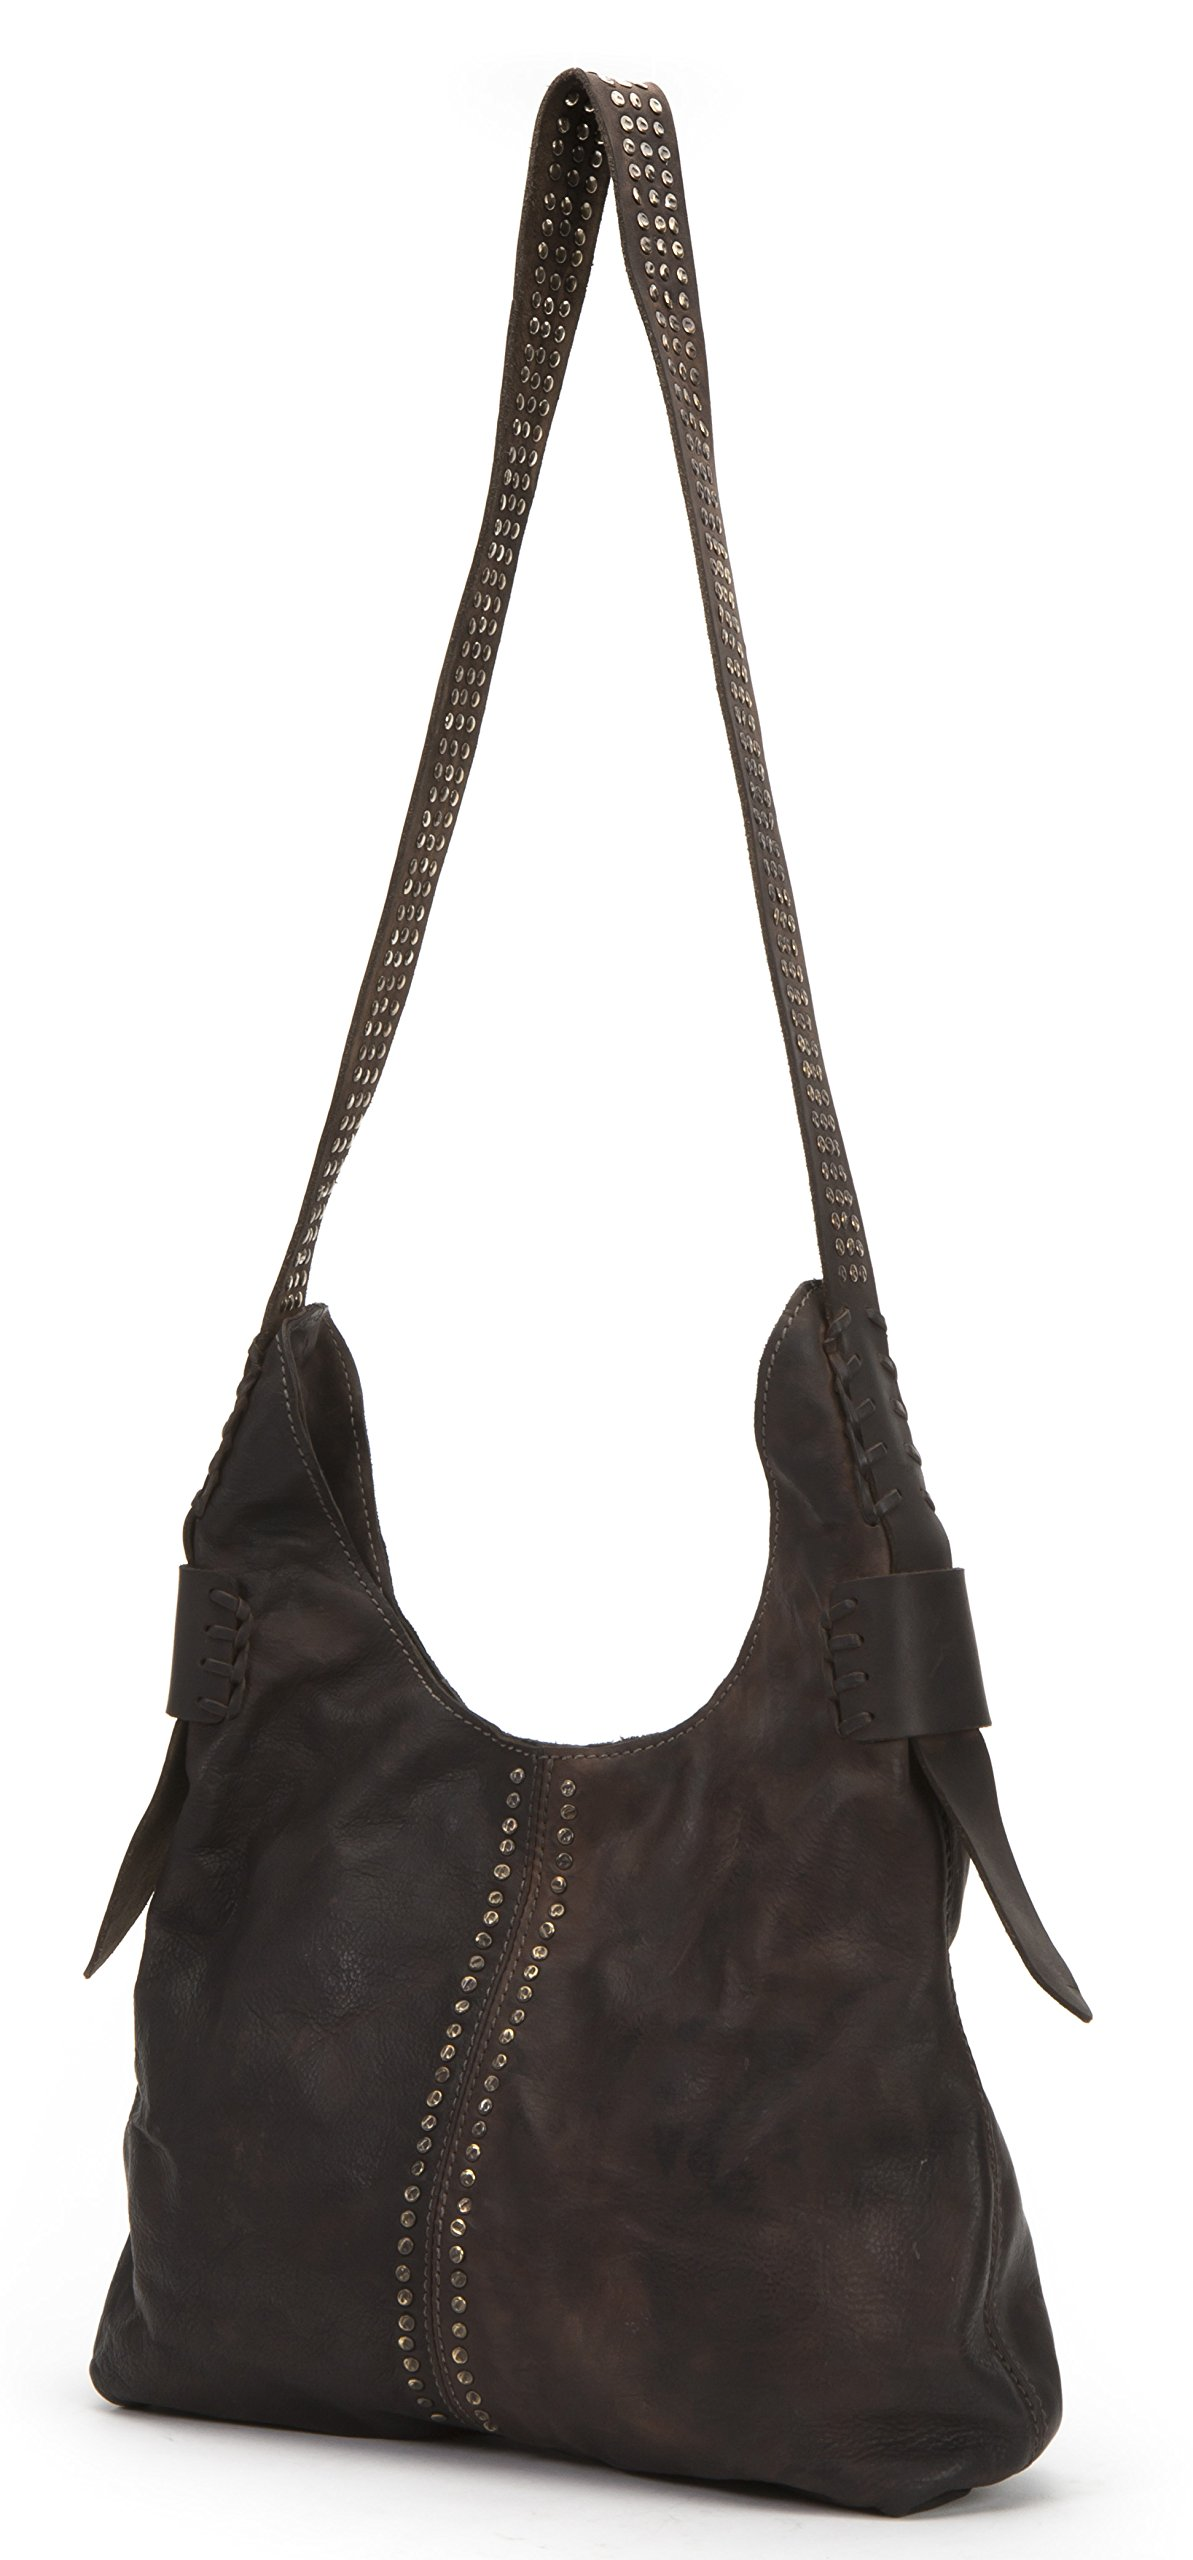 FRYE Samantha Studded Hobo, Chocolate by FRYE (Image #1)